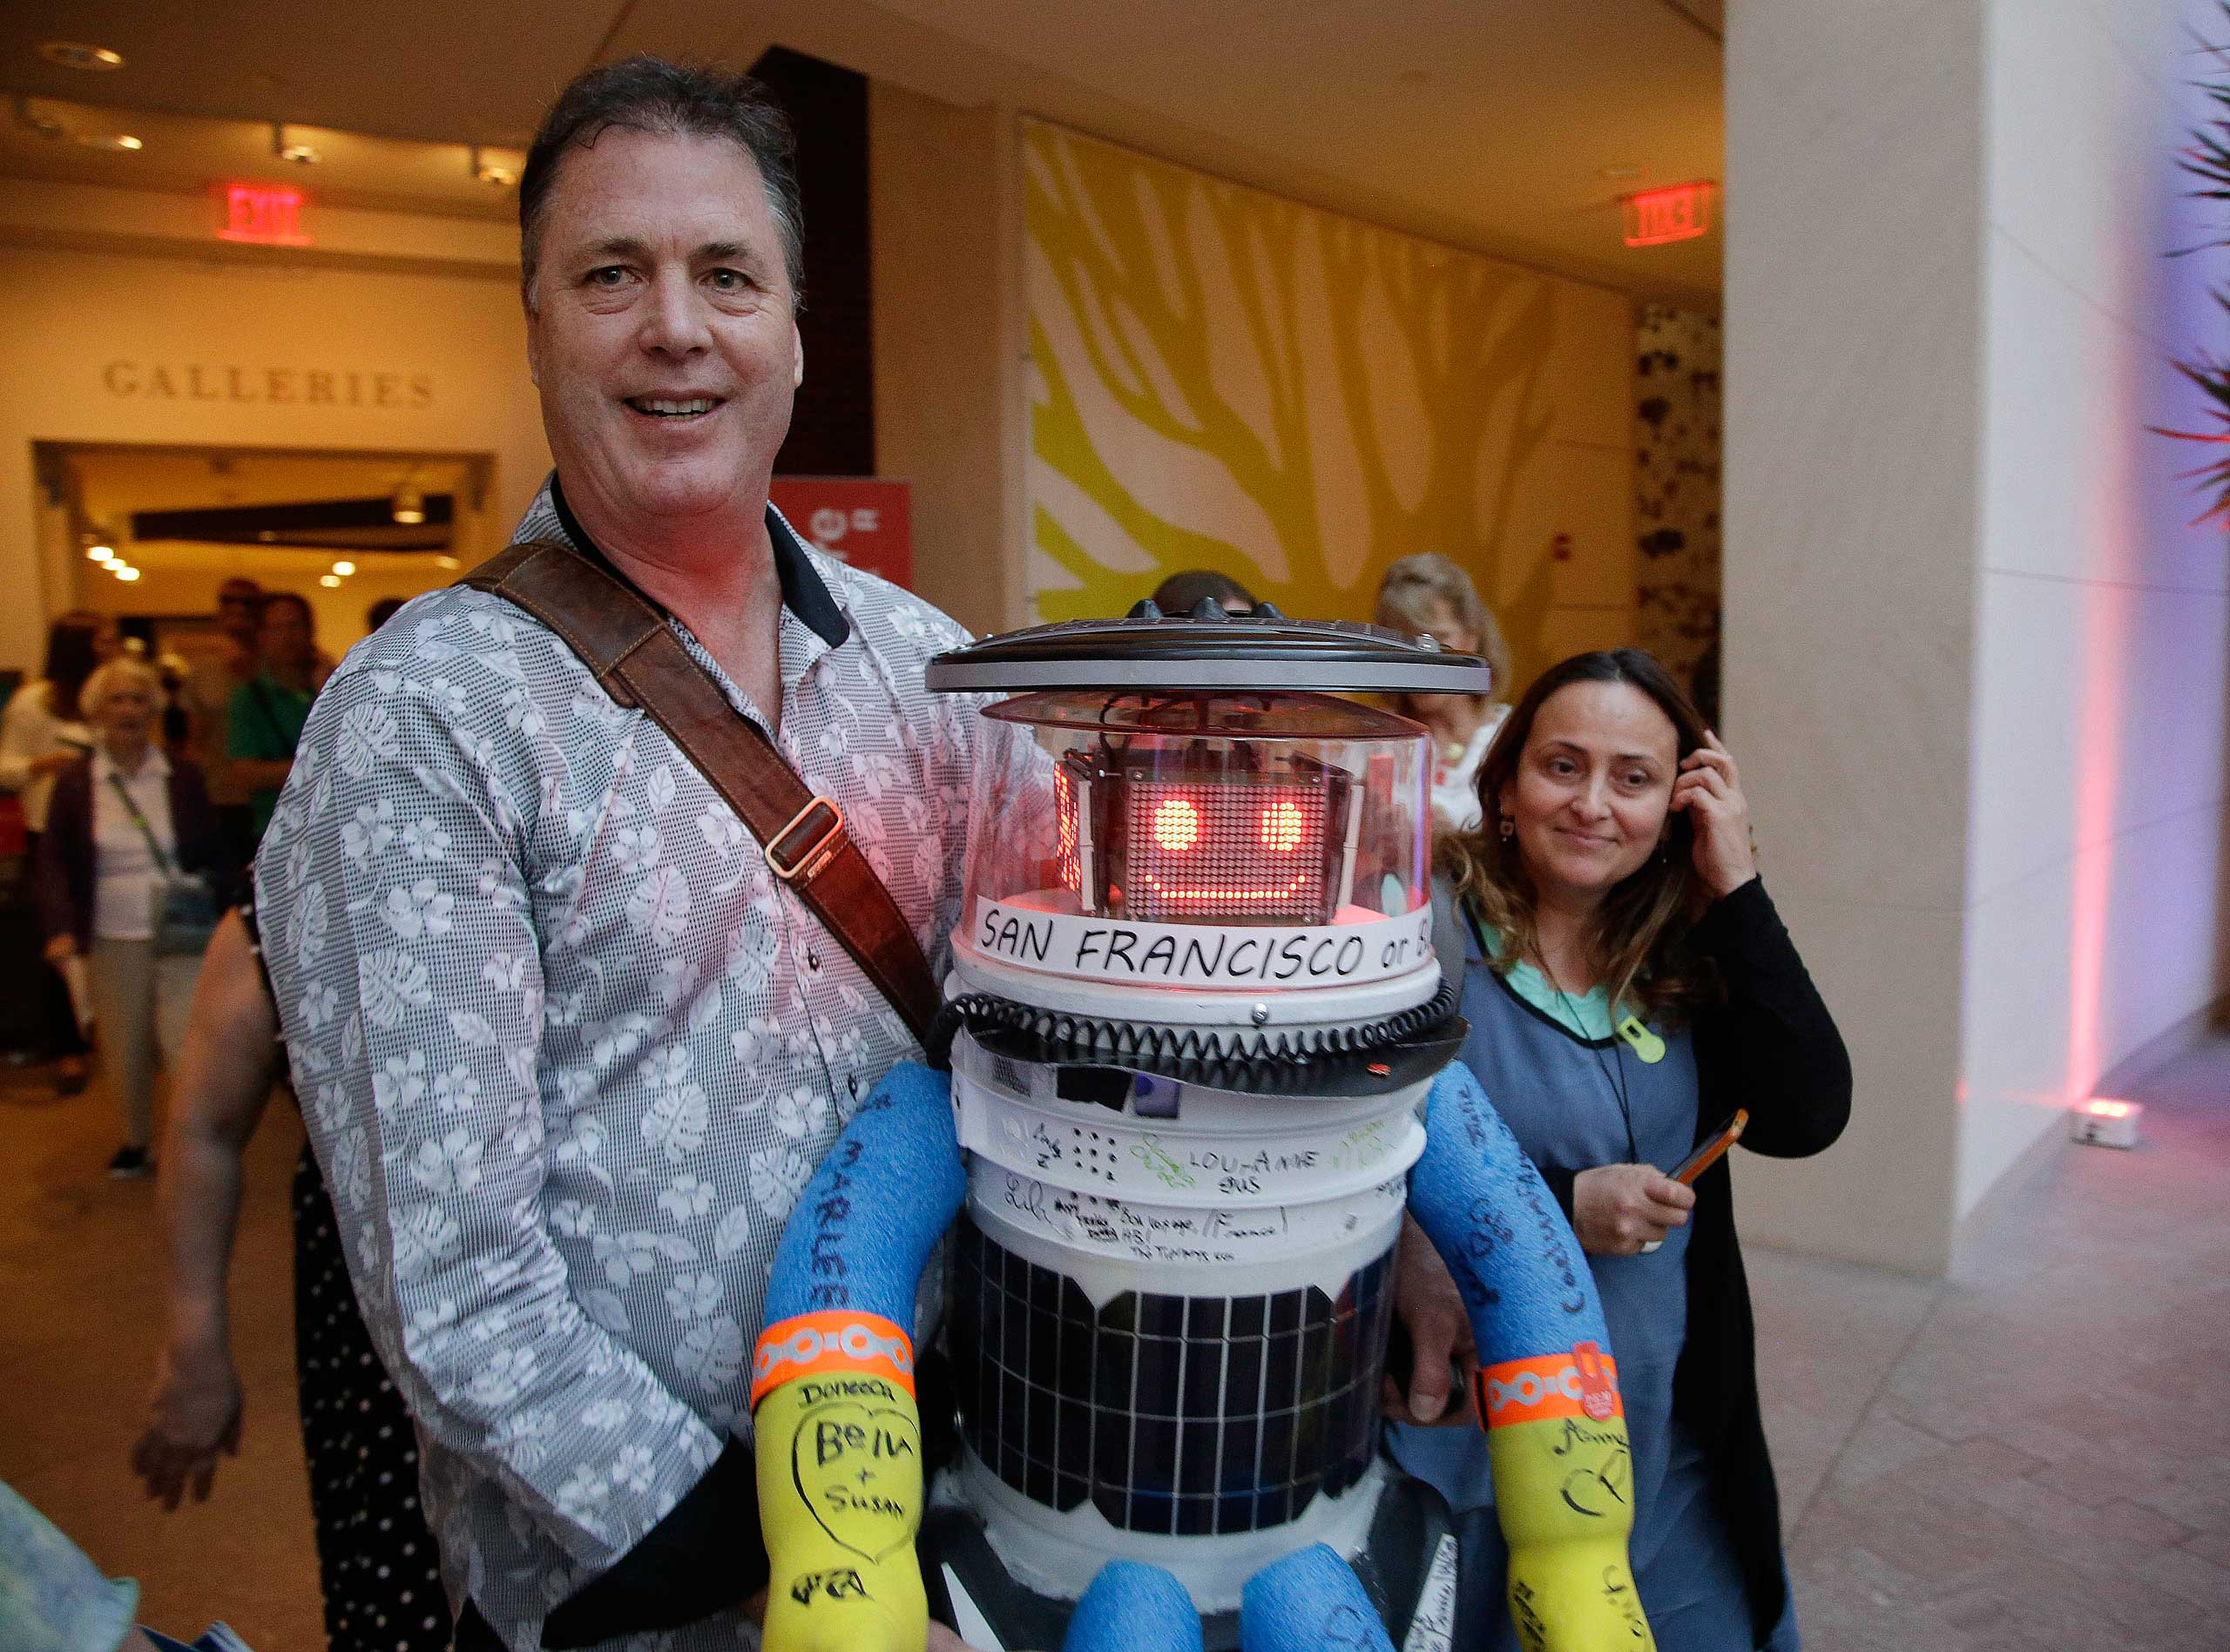 Co-creator David Harris Smith carries hitchBOT, a hitchhiking robot, during its' introduction to an American audience at the Peabody Essex Museum in Salem, Mass. on July 16, 2015.